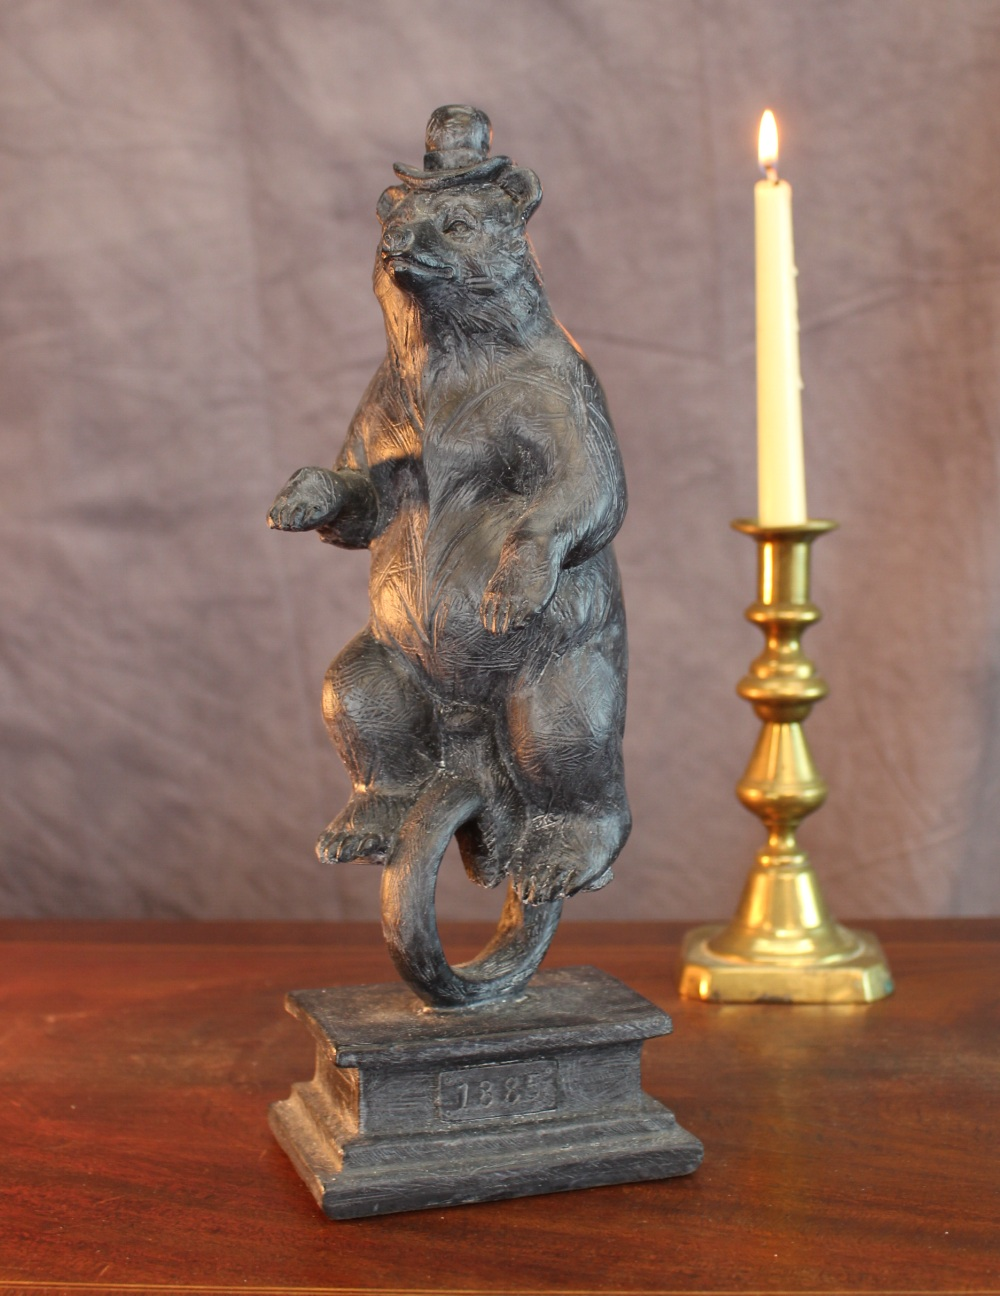 A Unicycle Riding Bear 1800's On Pedestal Circus Midway Bicycle Old Style